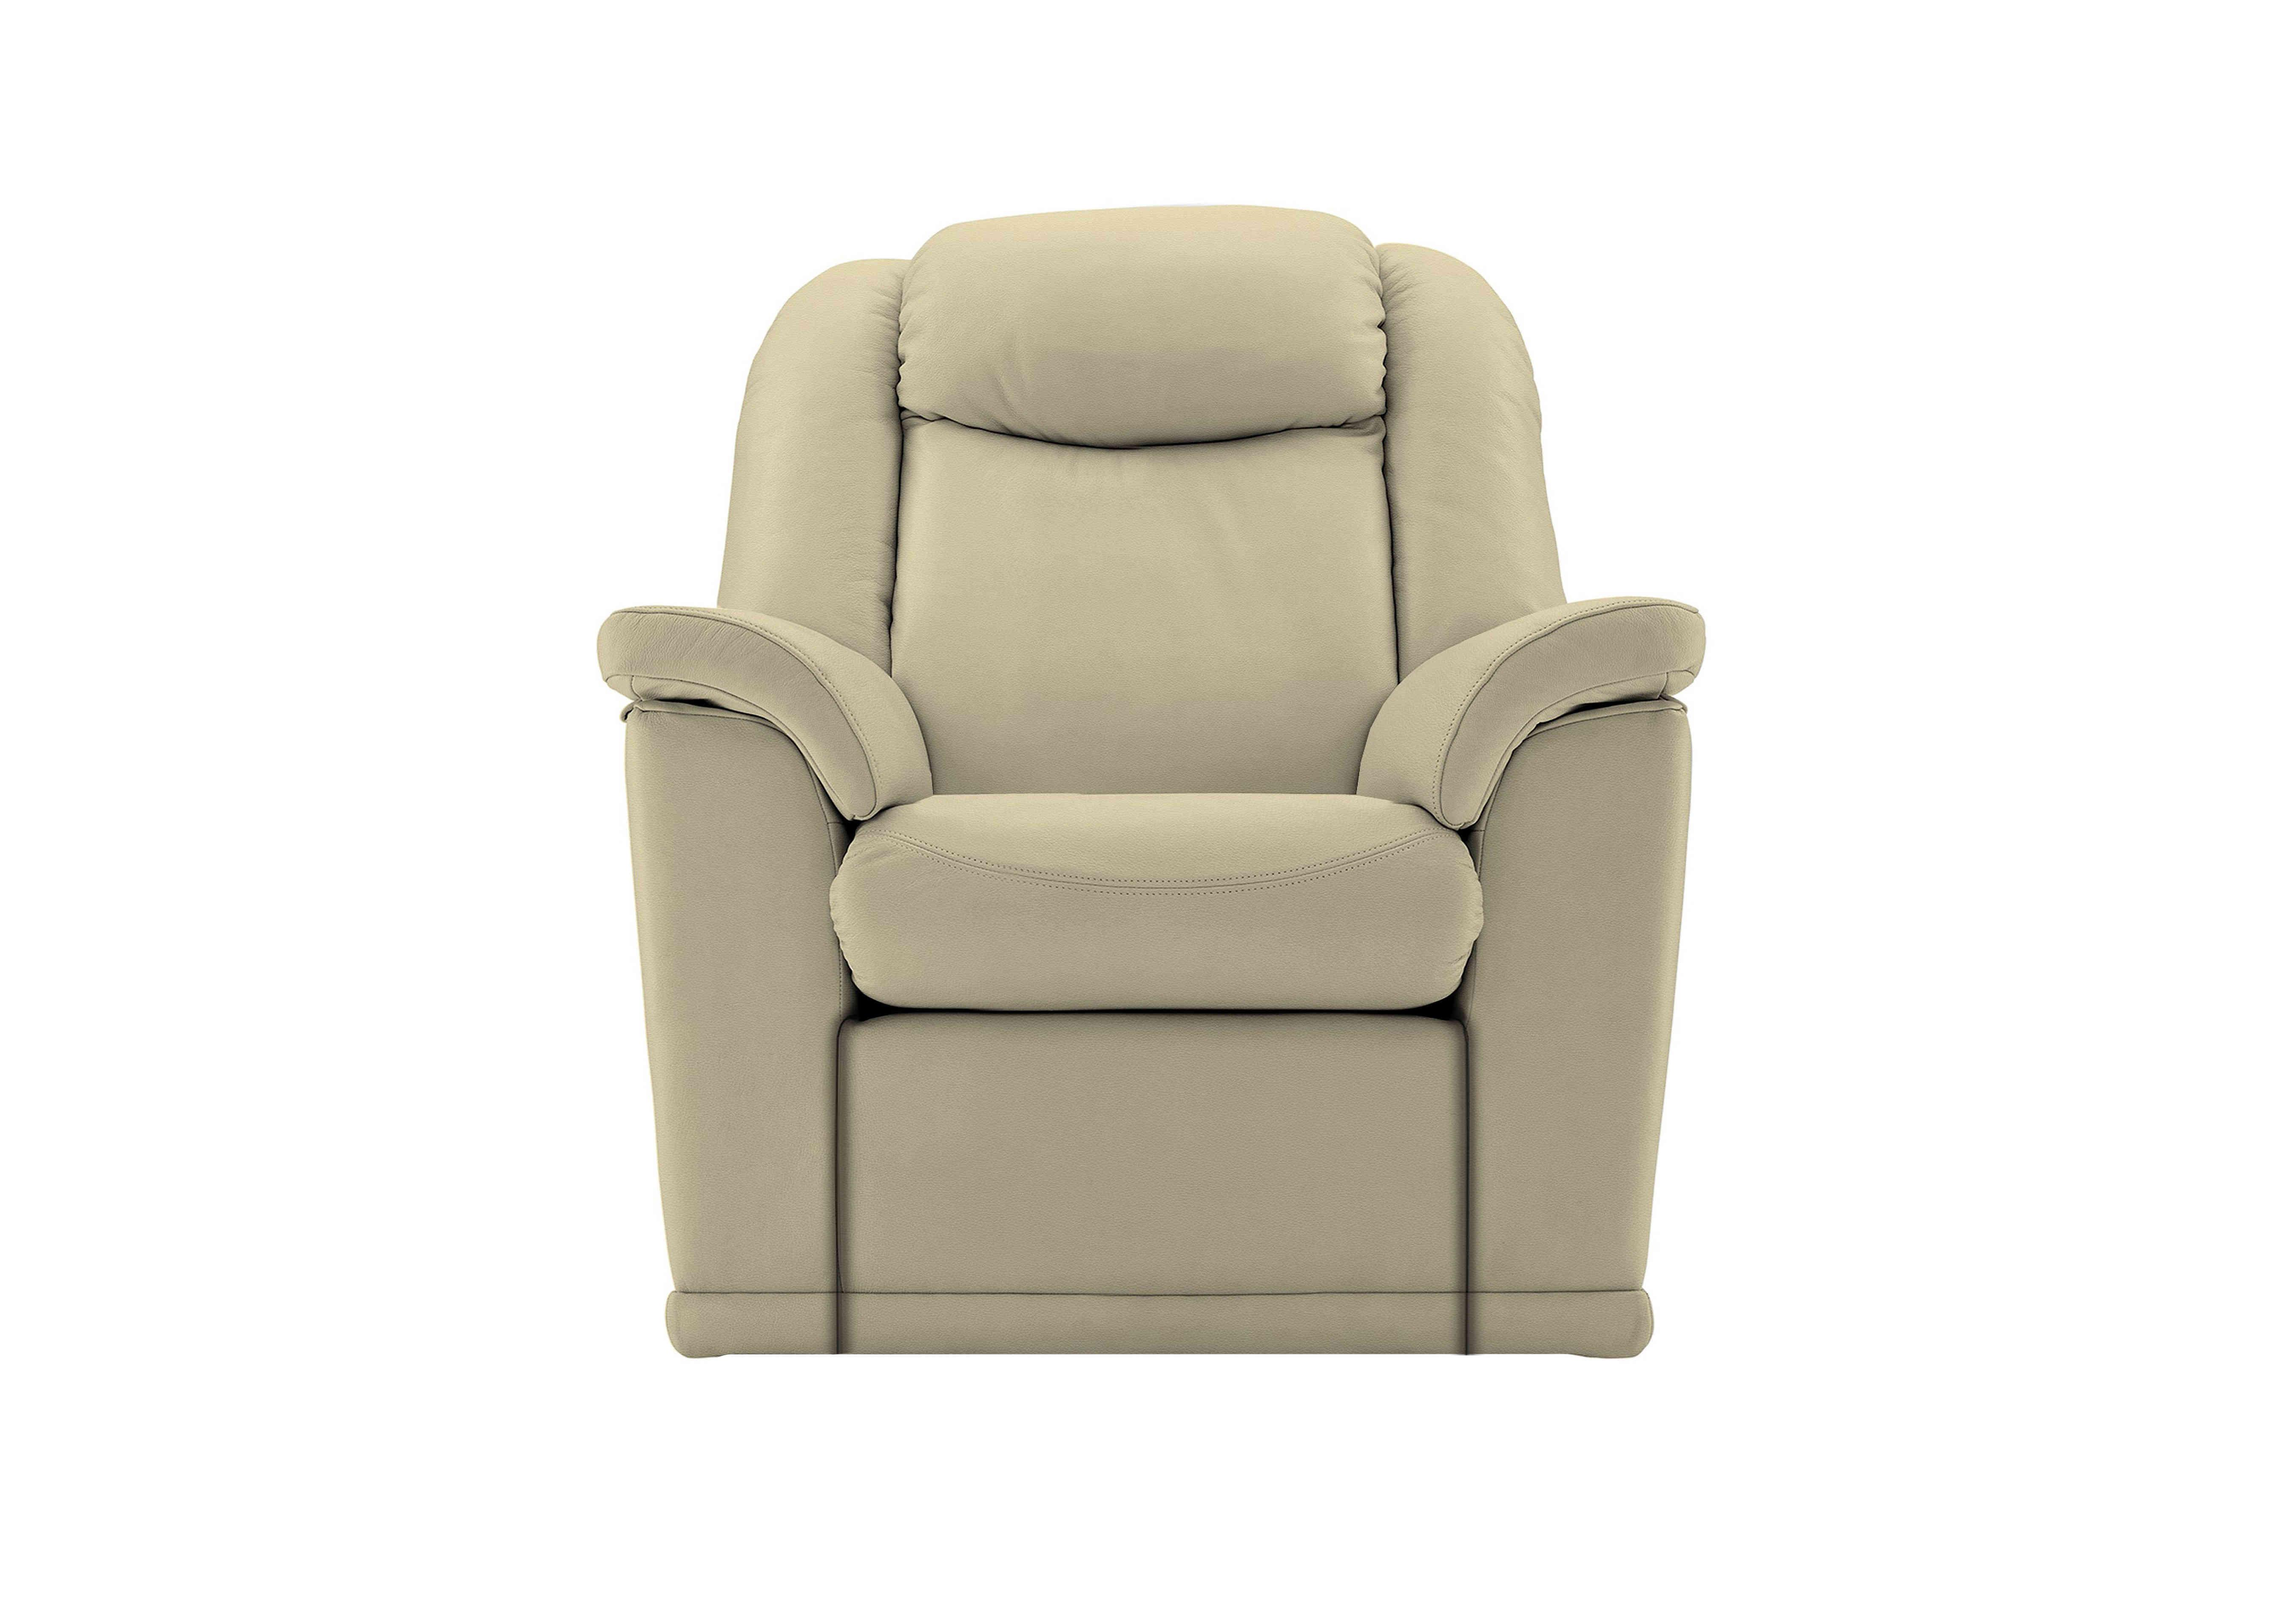 recliner chairs uk yellow chair armchairs furniture village save 622 g plan milton leather armchair